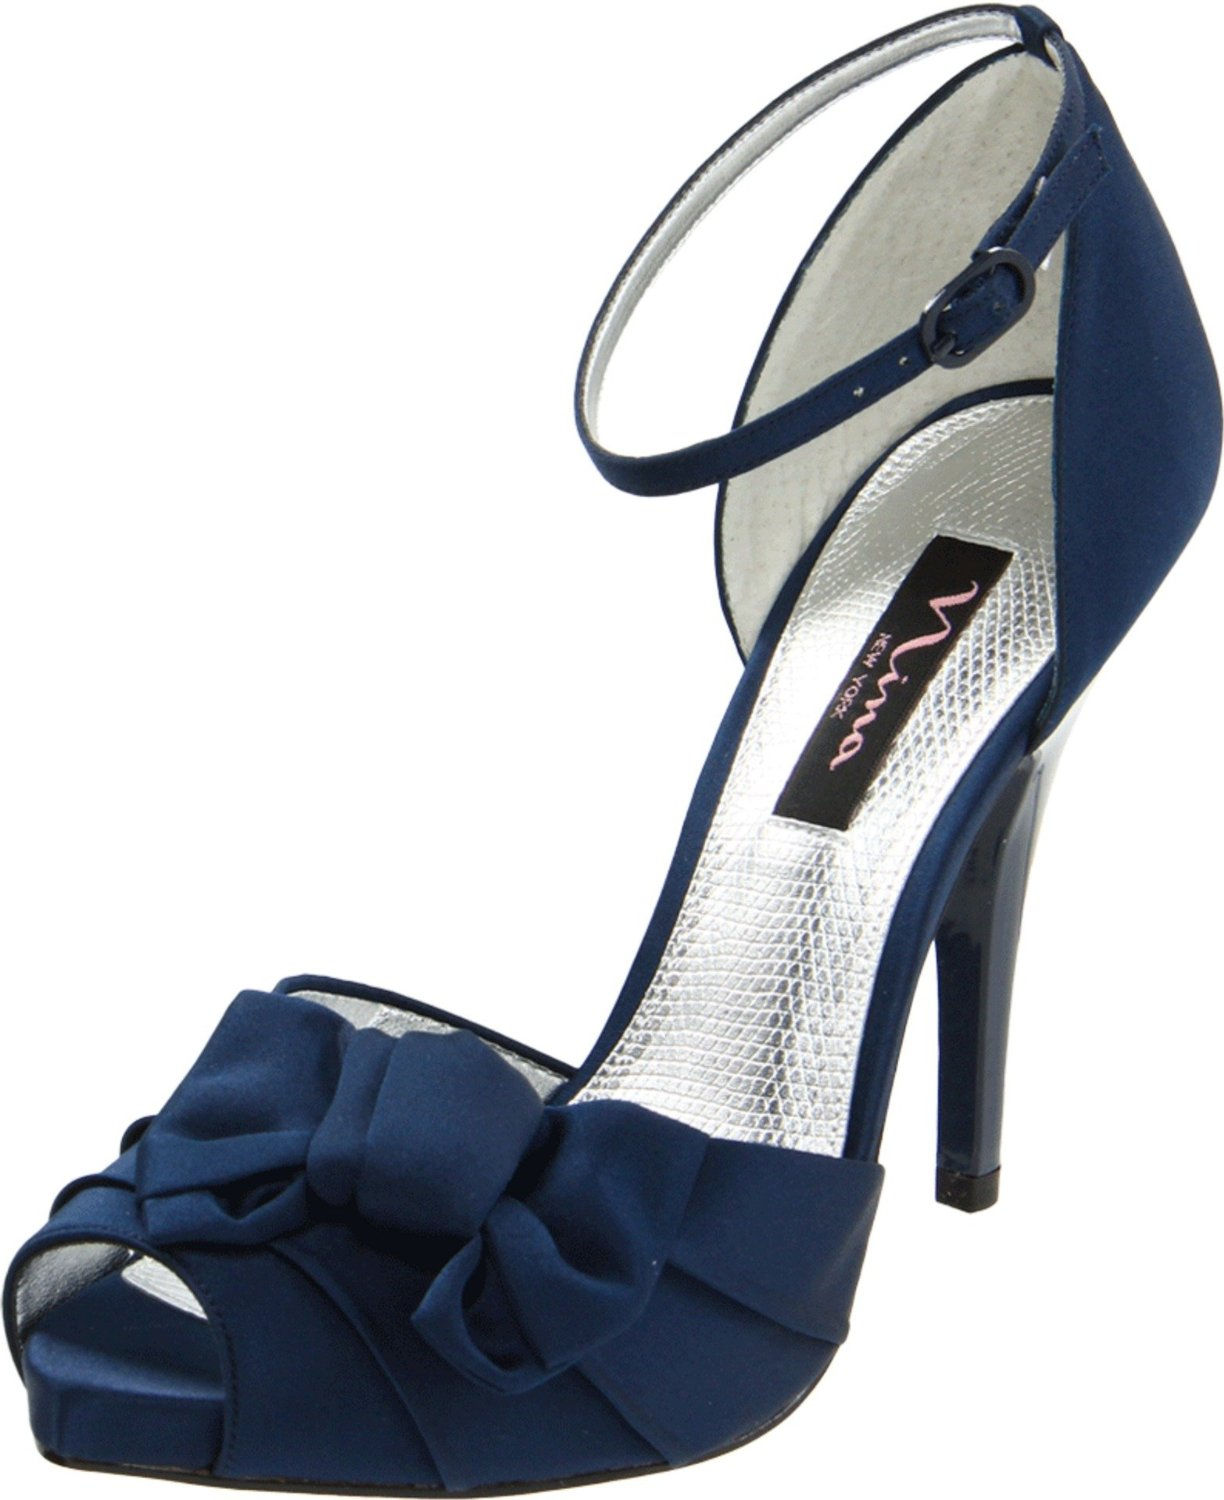 Blue bridal shoes wedding plan ideas navy blue bridal wedding shoes cheap pump shoes junglespirit Choice Image